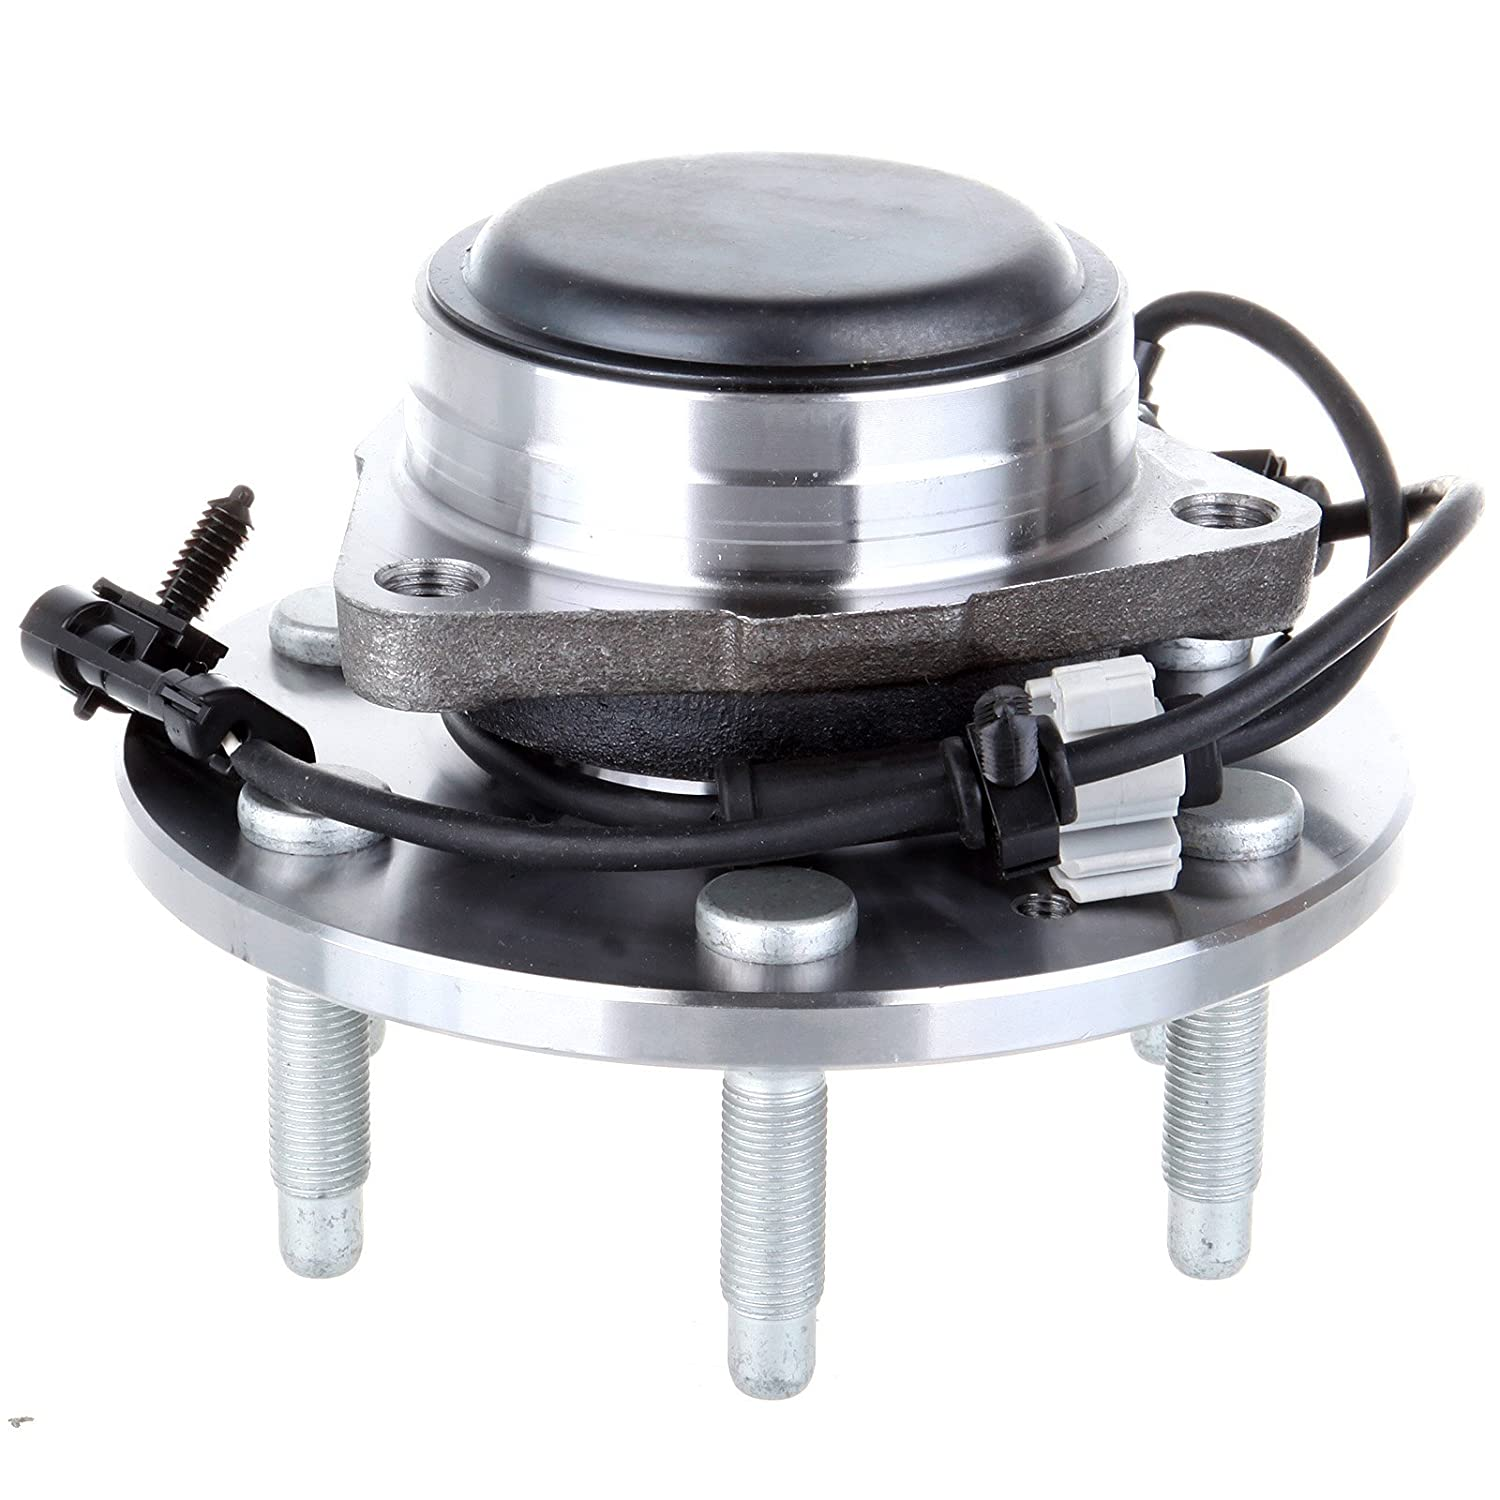 991805-5209-1452039322 OCPTY NEW Wheel Hub Bearings Front 6 LUGS Replacement fit for Chevrolet Silverado 1500 1999-2006 RWD GMC Sierra 1500 1999-2006 RWD Compatible with OE:515054 Pack of 2